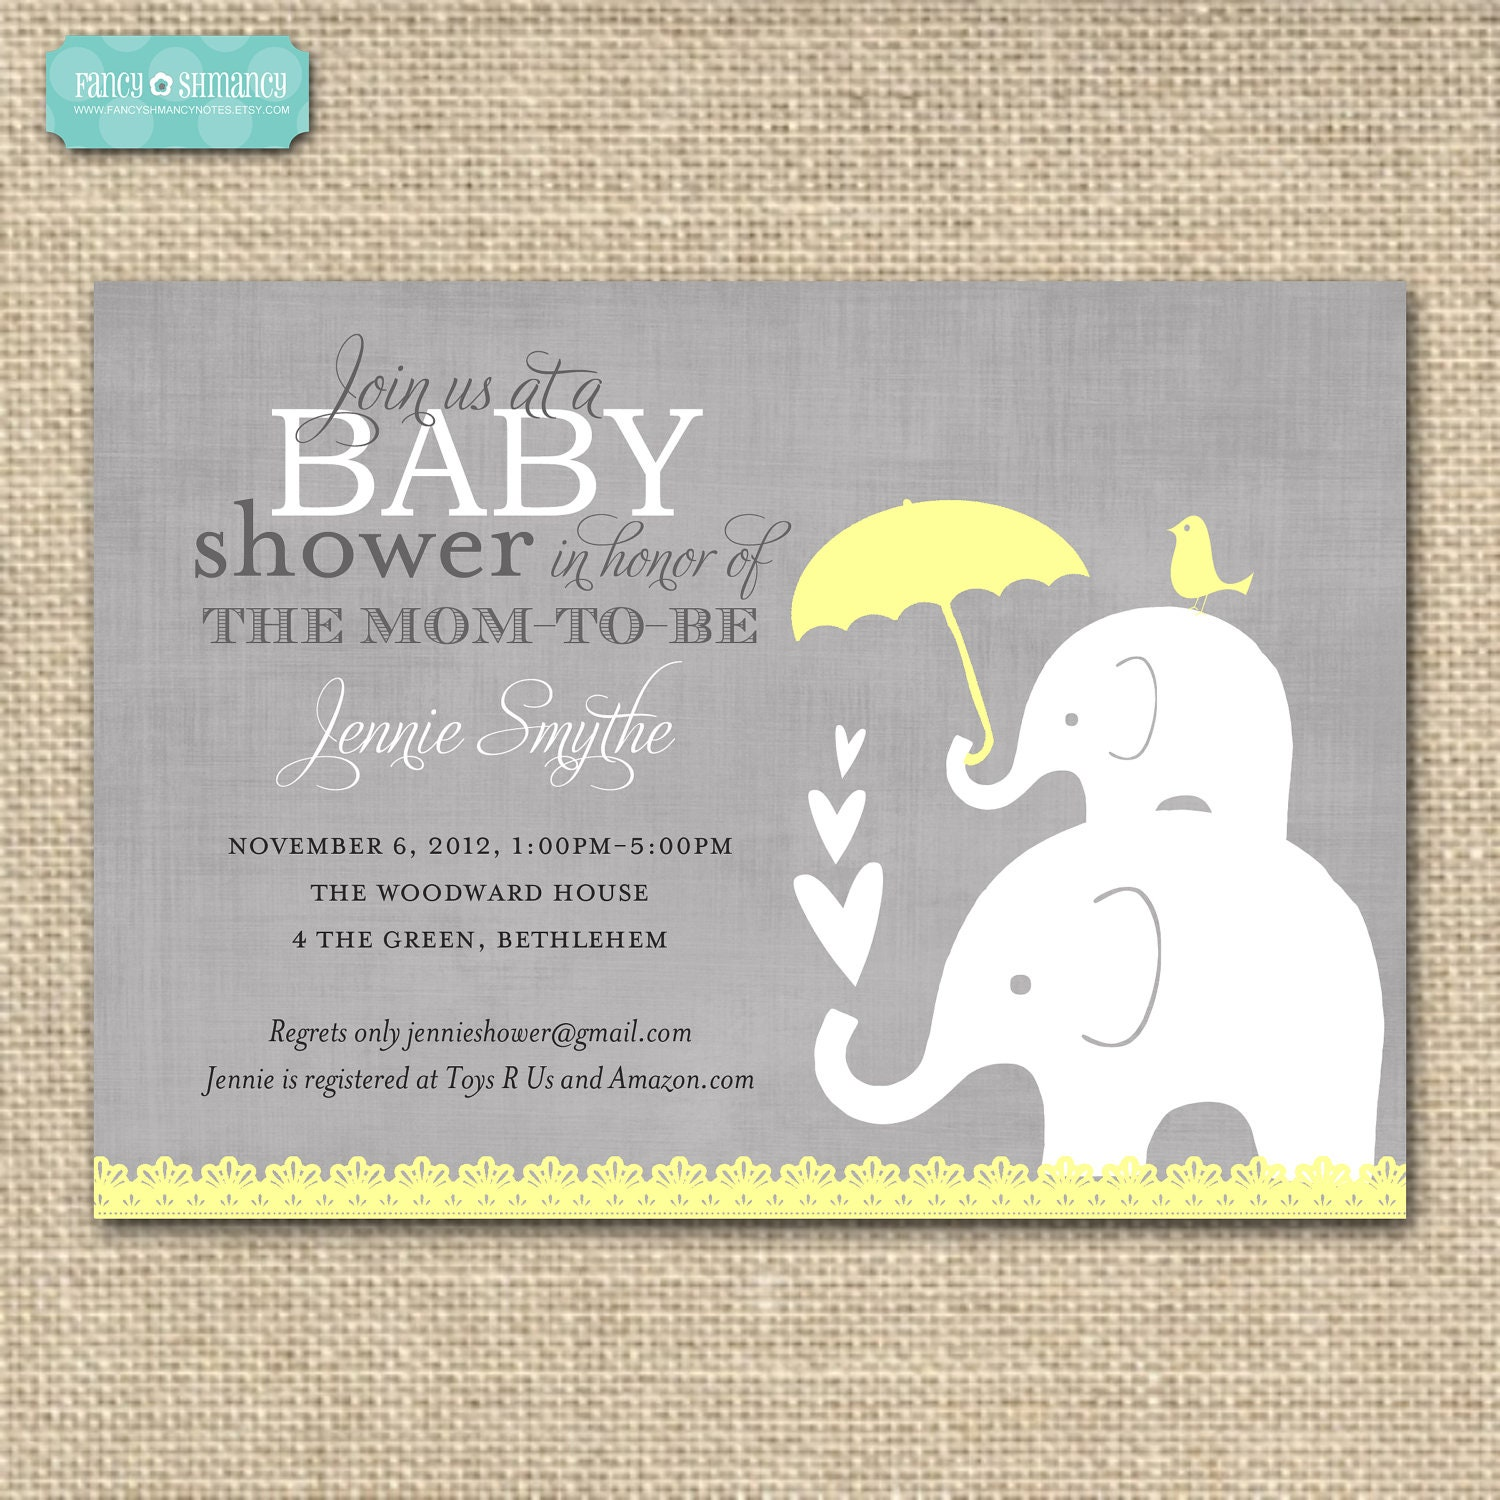 baby shower invitationelephant yellow and by fancyshmancynotes